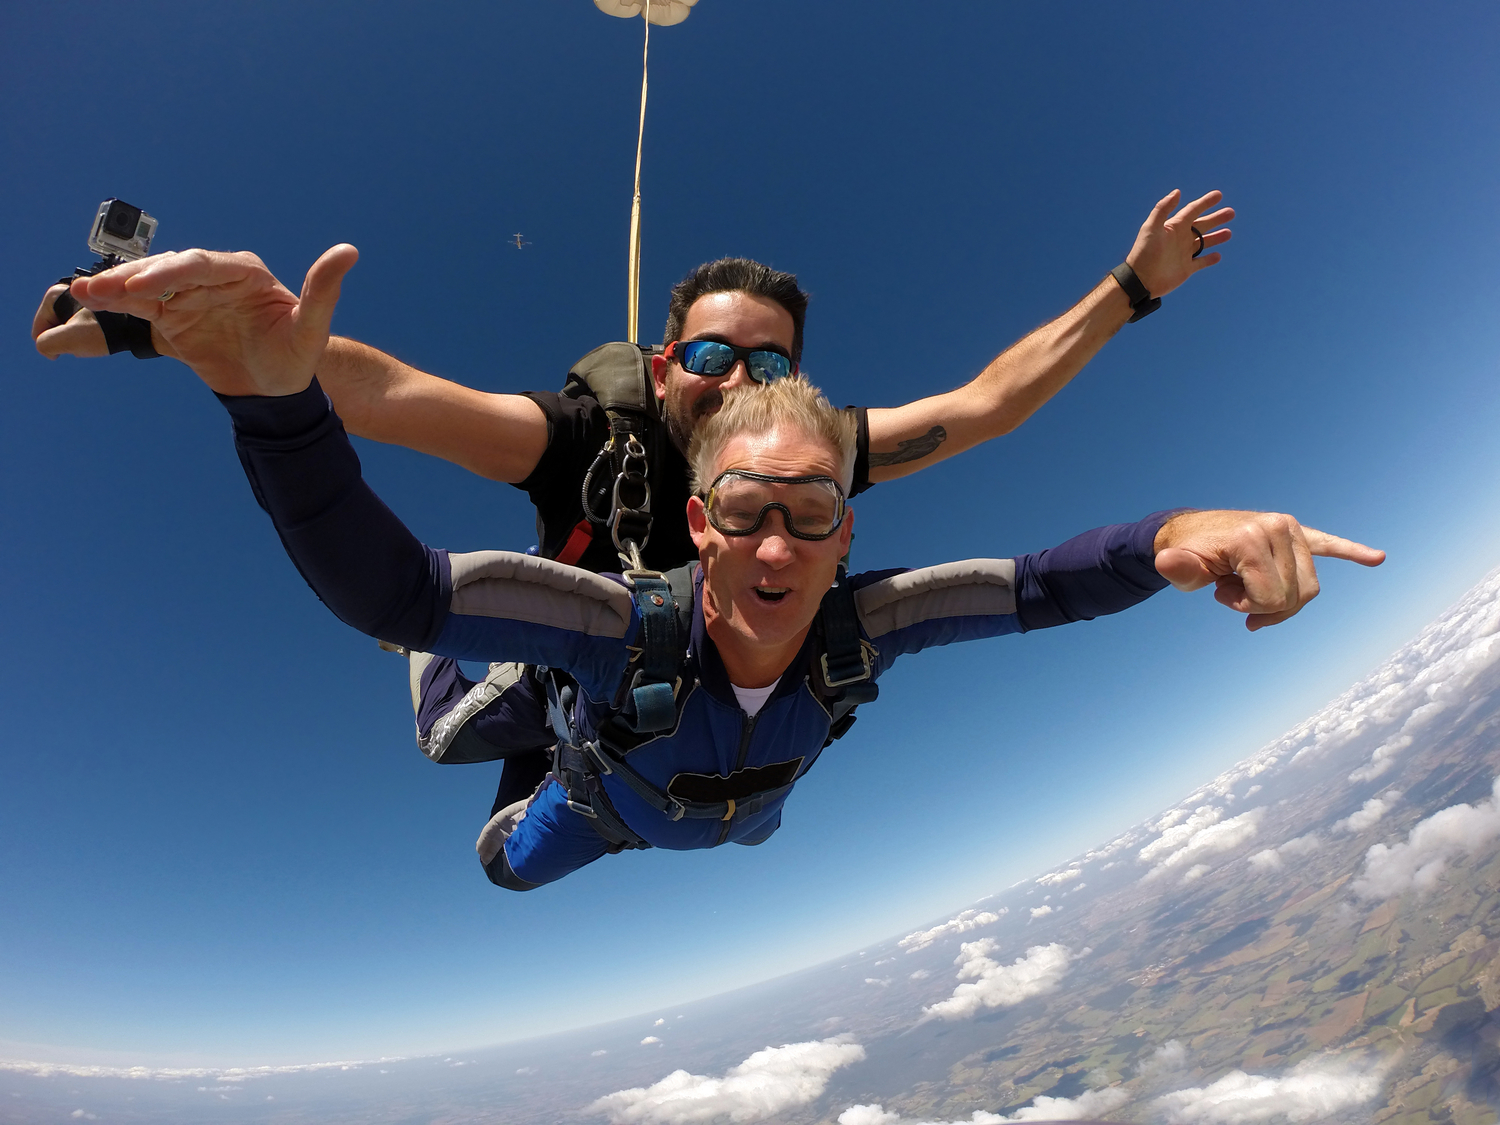 Happy middle-aged man doing a tandem skydive